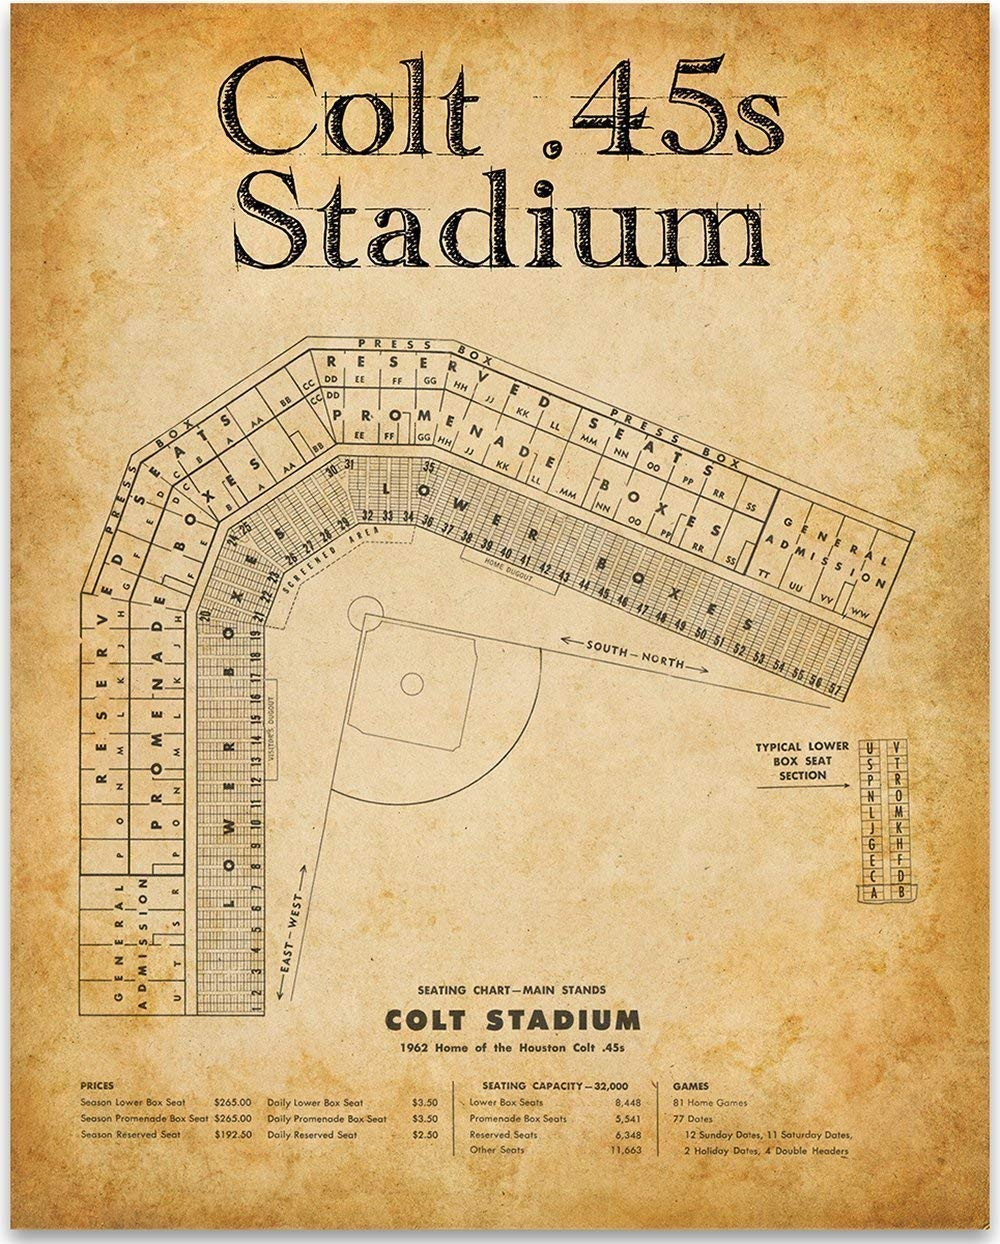 Colt 45s Baseball Stadium Seating Chart 11x14 Unframed Art Print Great Sports Bar Decor And Gift Under 15 For Baseball Fans